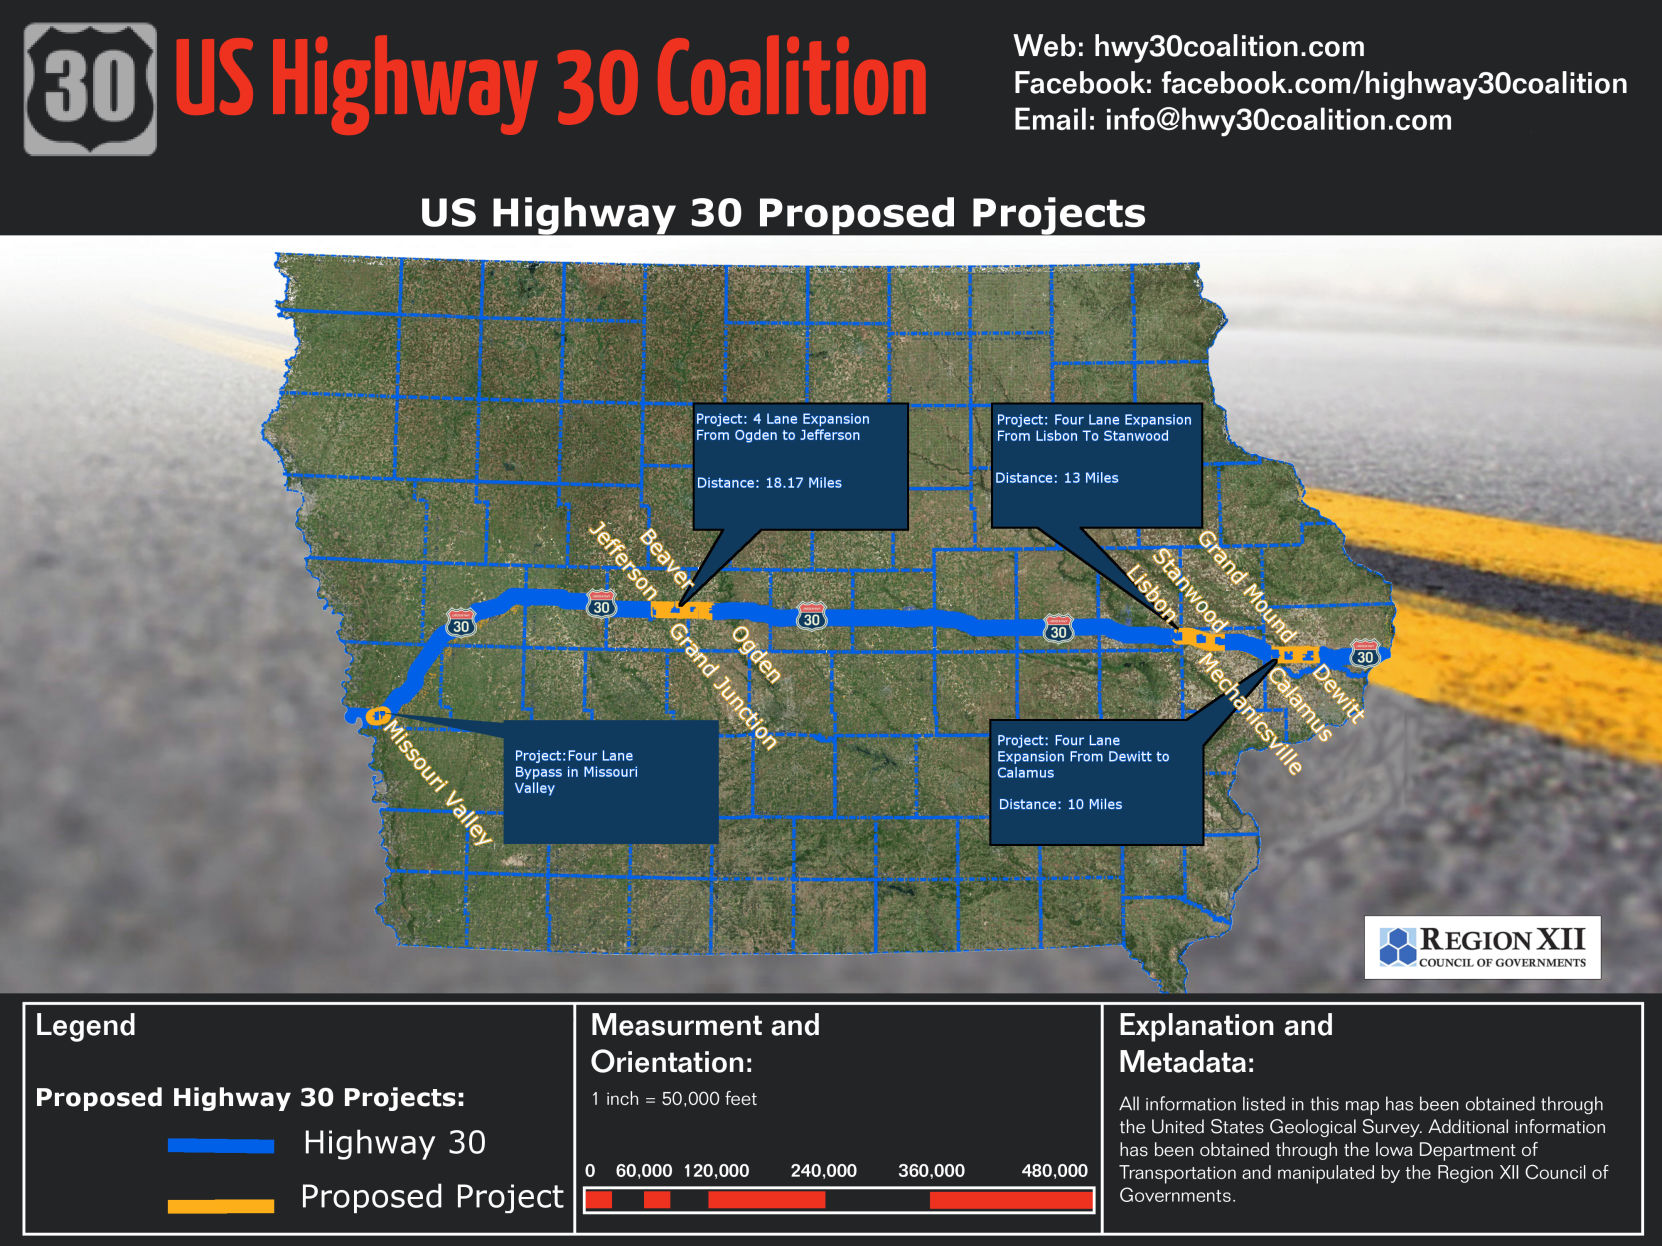 UPDATE 4 fourlane projects designated priority by Iowa